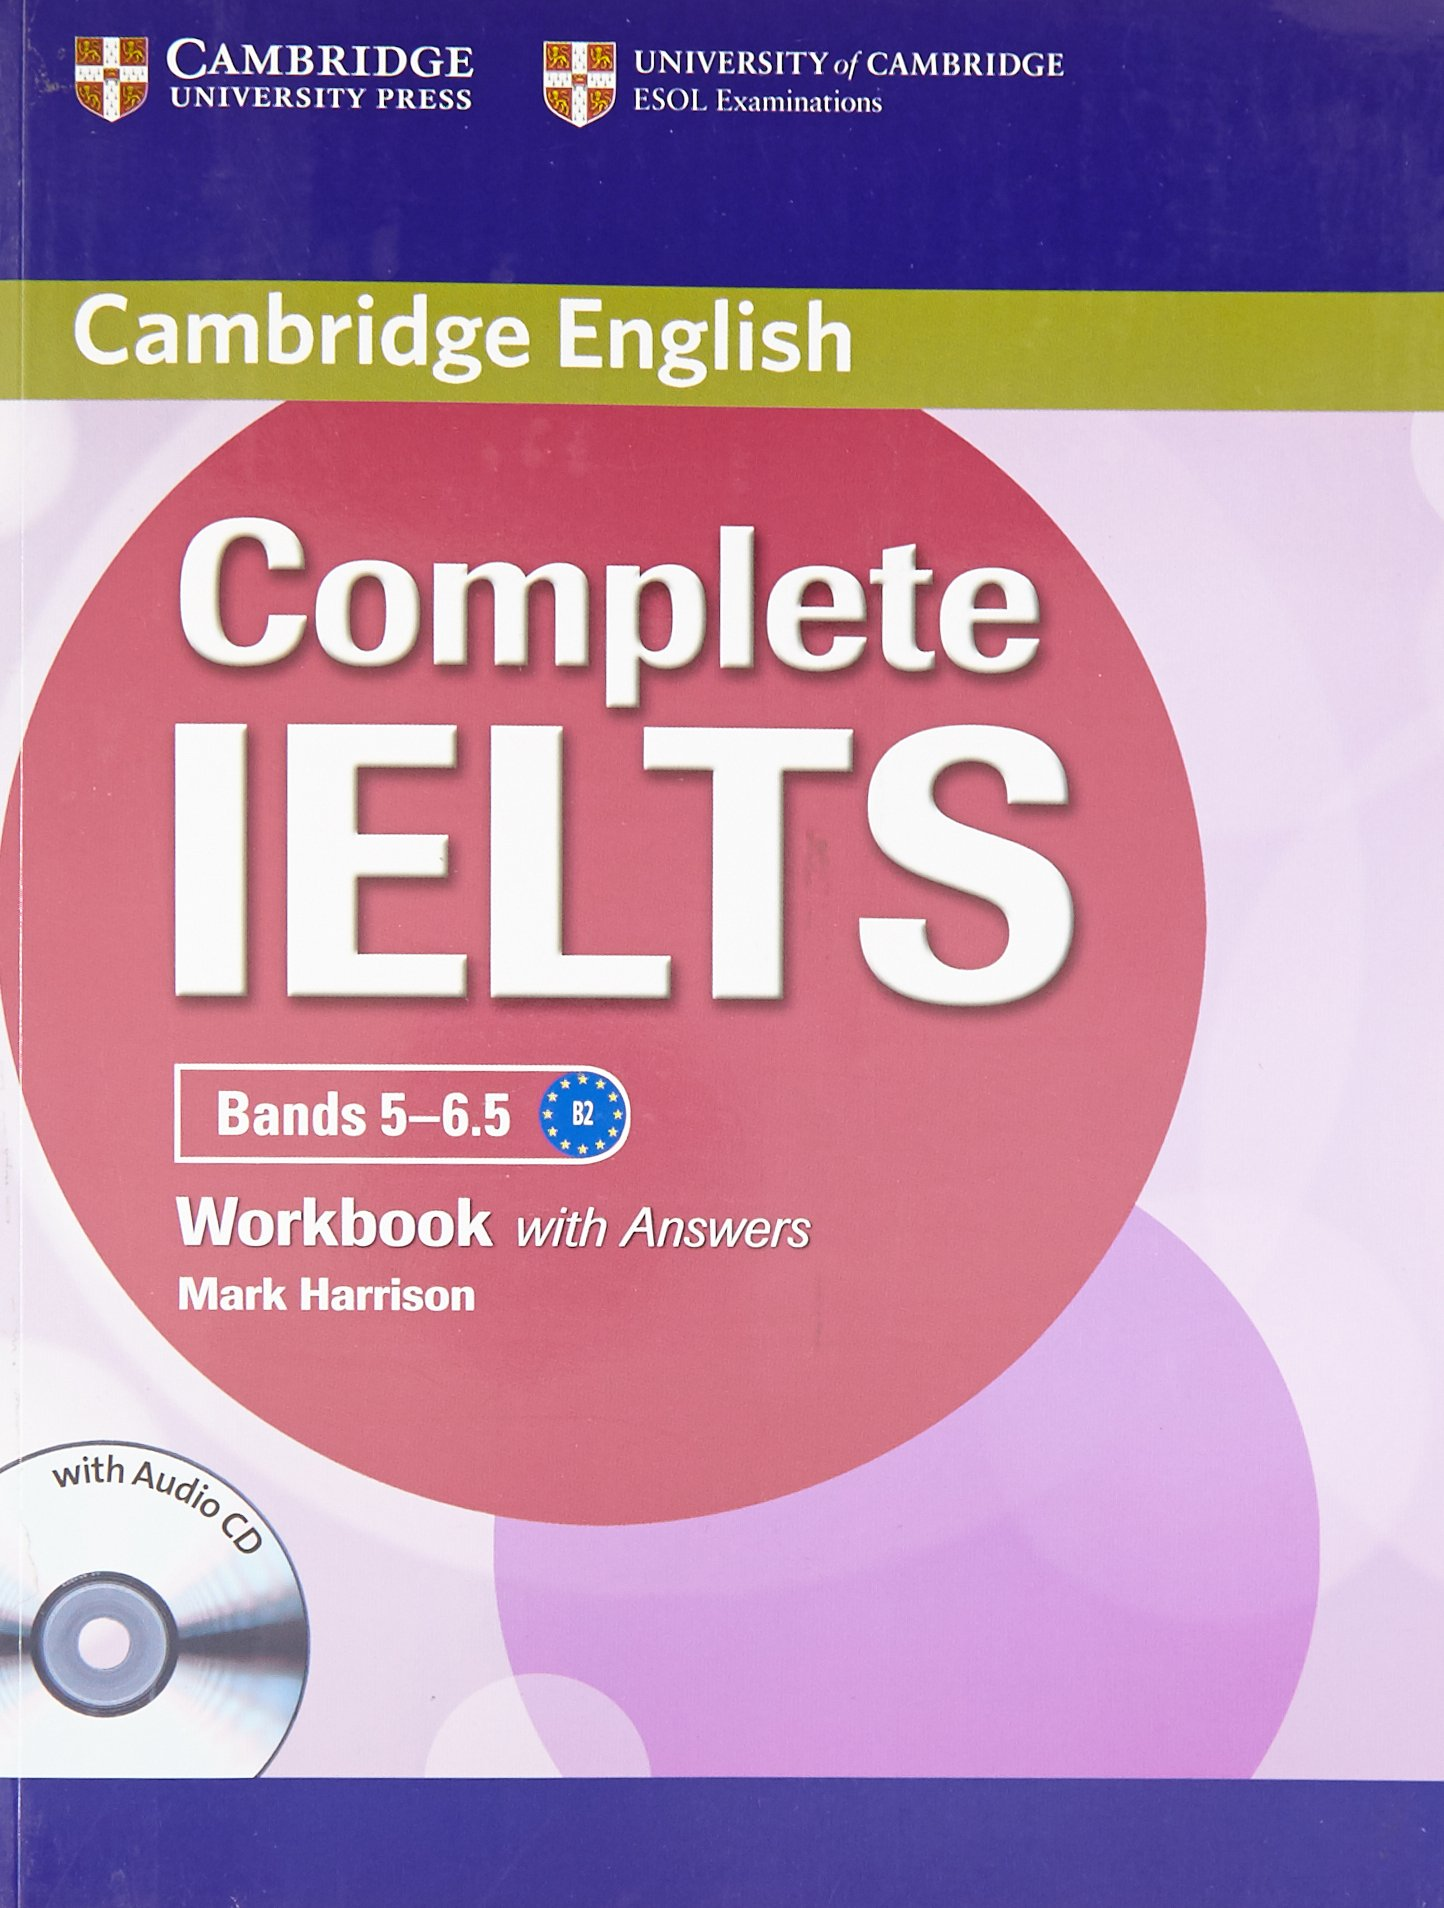 Complete IELTS Bands 5-6.5 Workbook with Answers with Audio CD:  Amazon.co.uk: Harrison: 9781107643666: Books